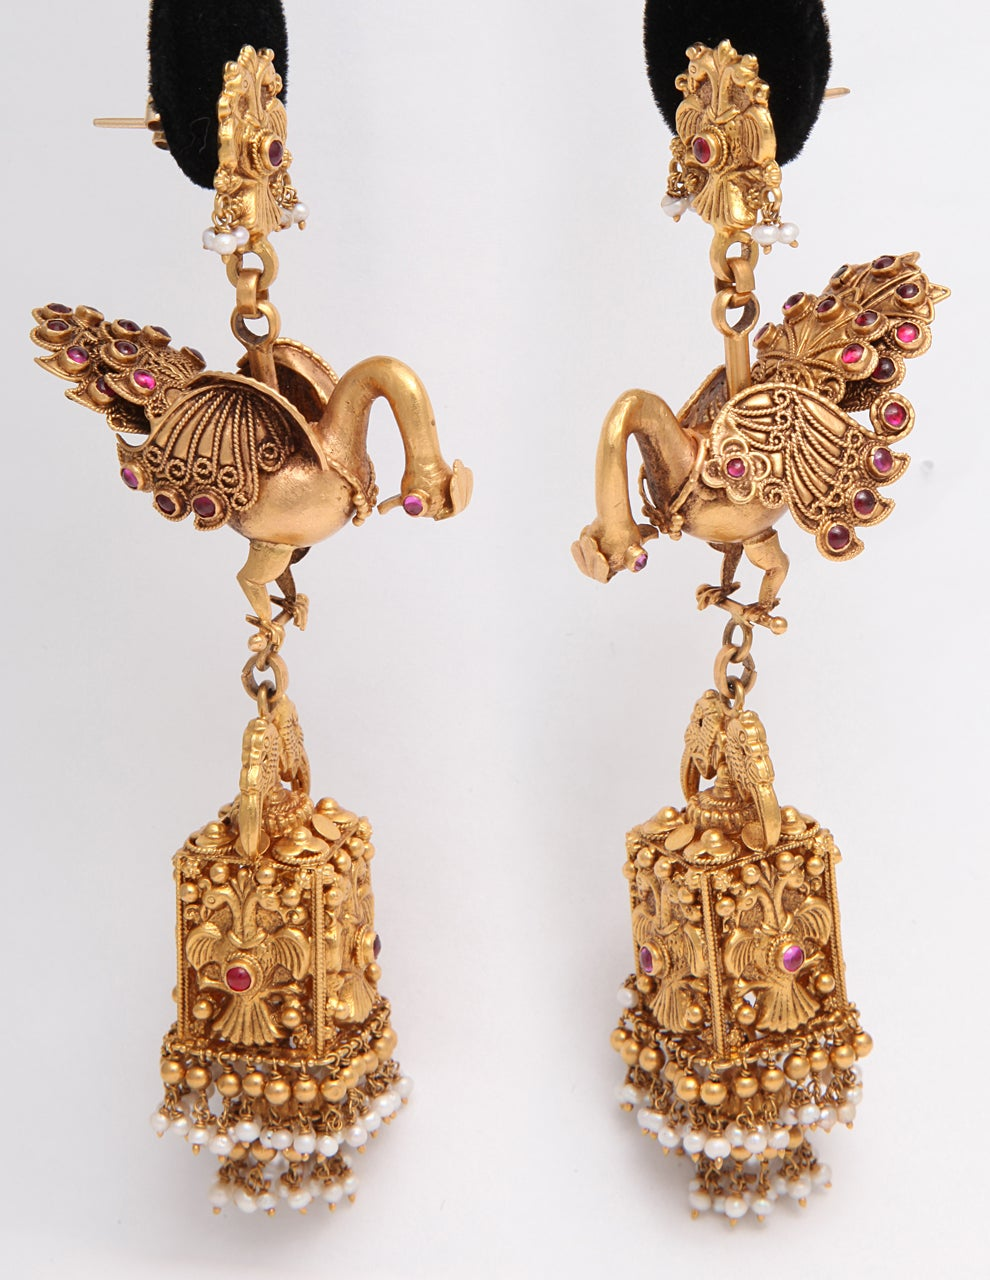 A pair of earrings composed of 18kt yellow gold peacocks with bezel set cabochon ruby eyes and feathers. The peacocks suspend 18kt yellow gold  cages. The cages showcase four bird plaques. The cages have 18kt yellow gold and pearl fringe at the